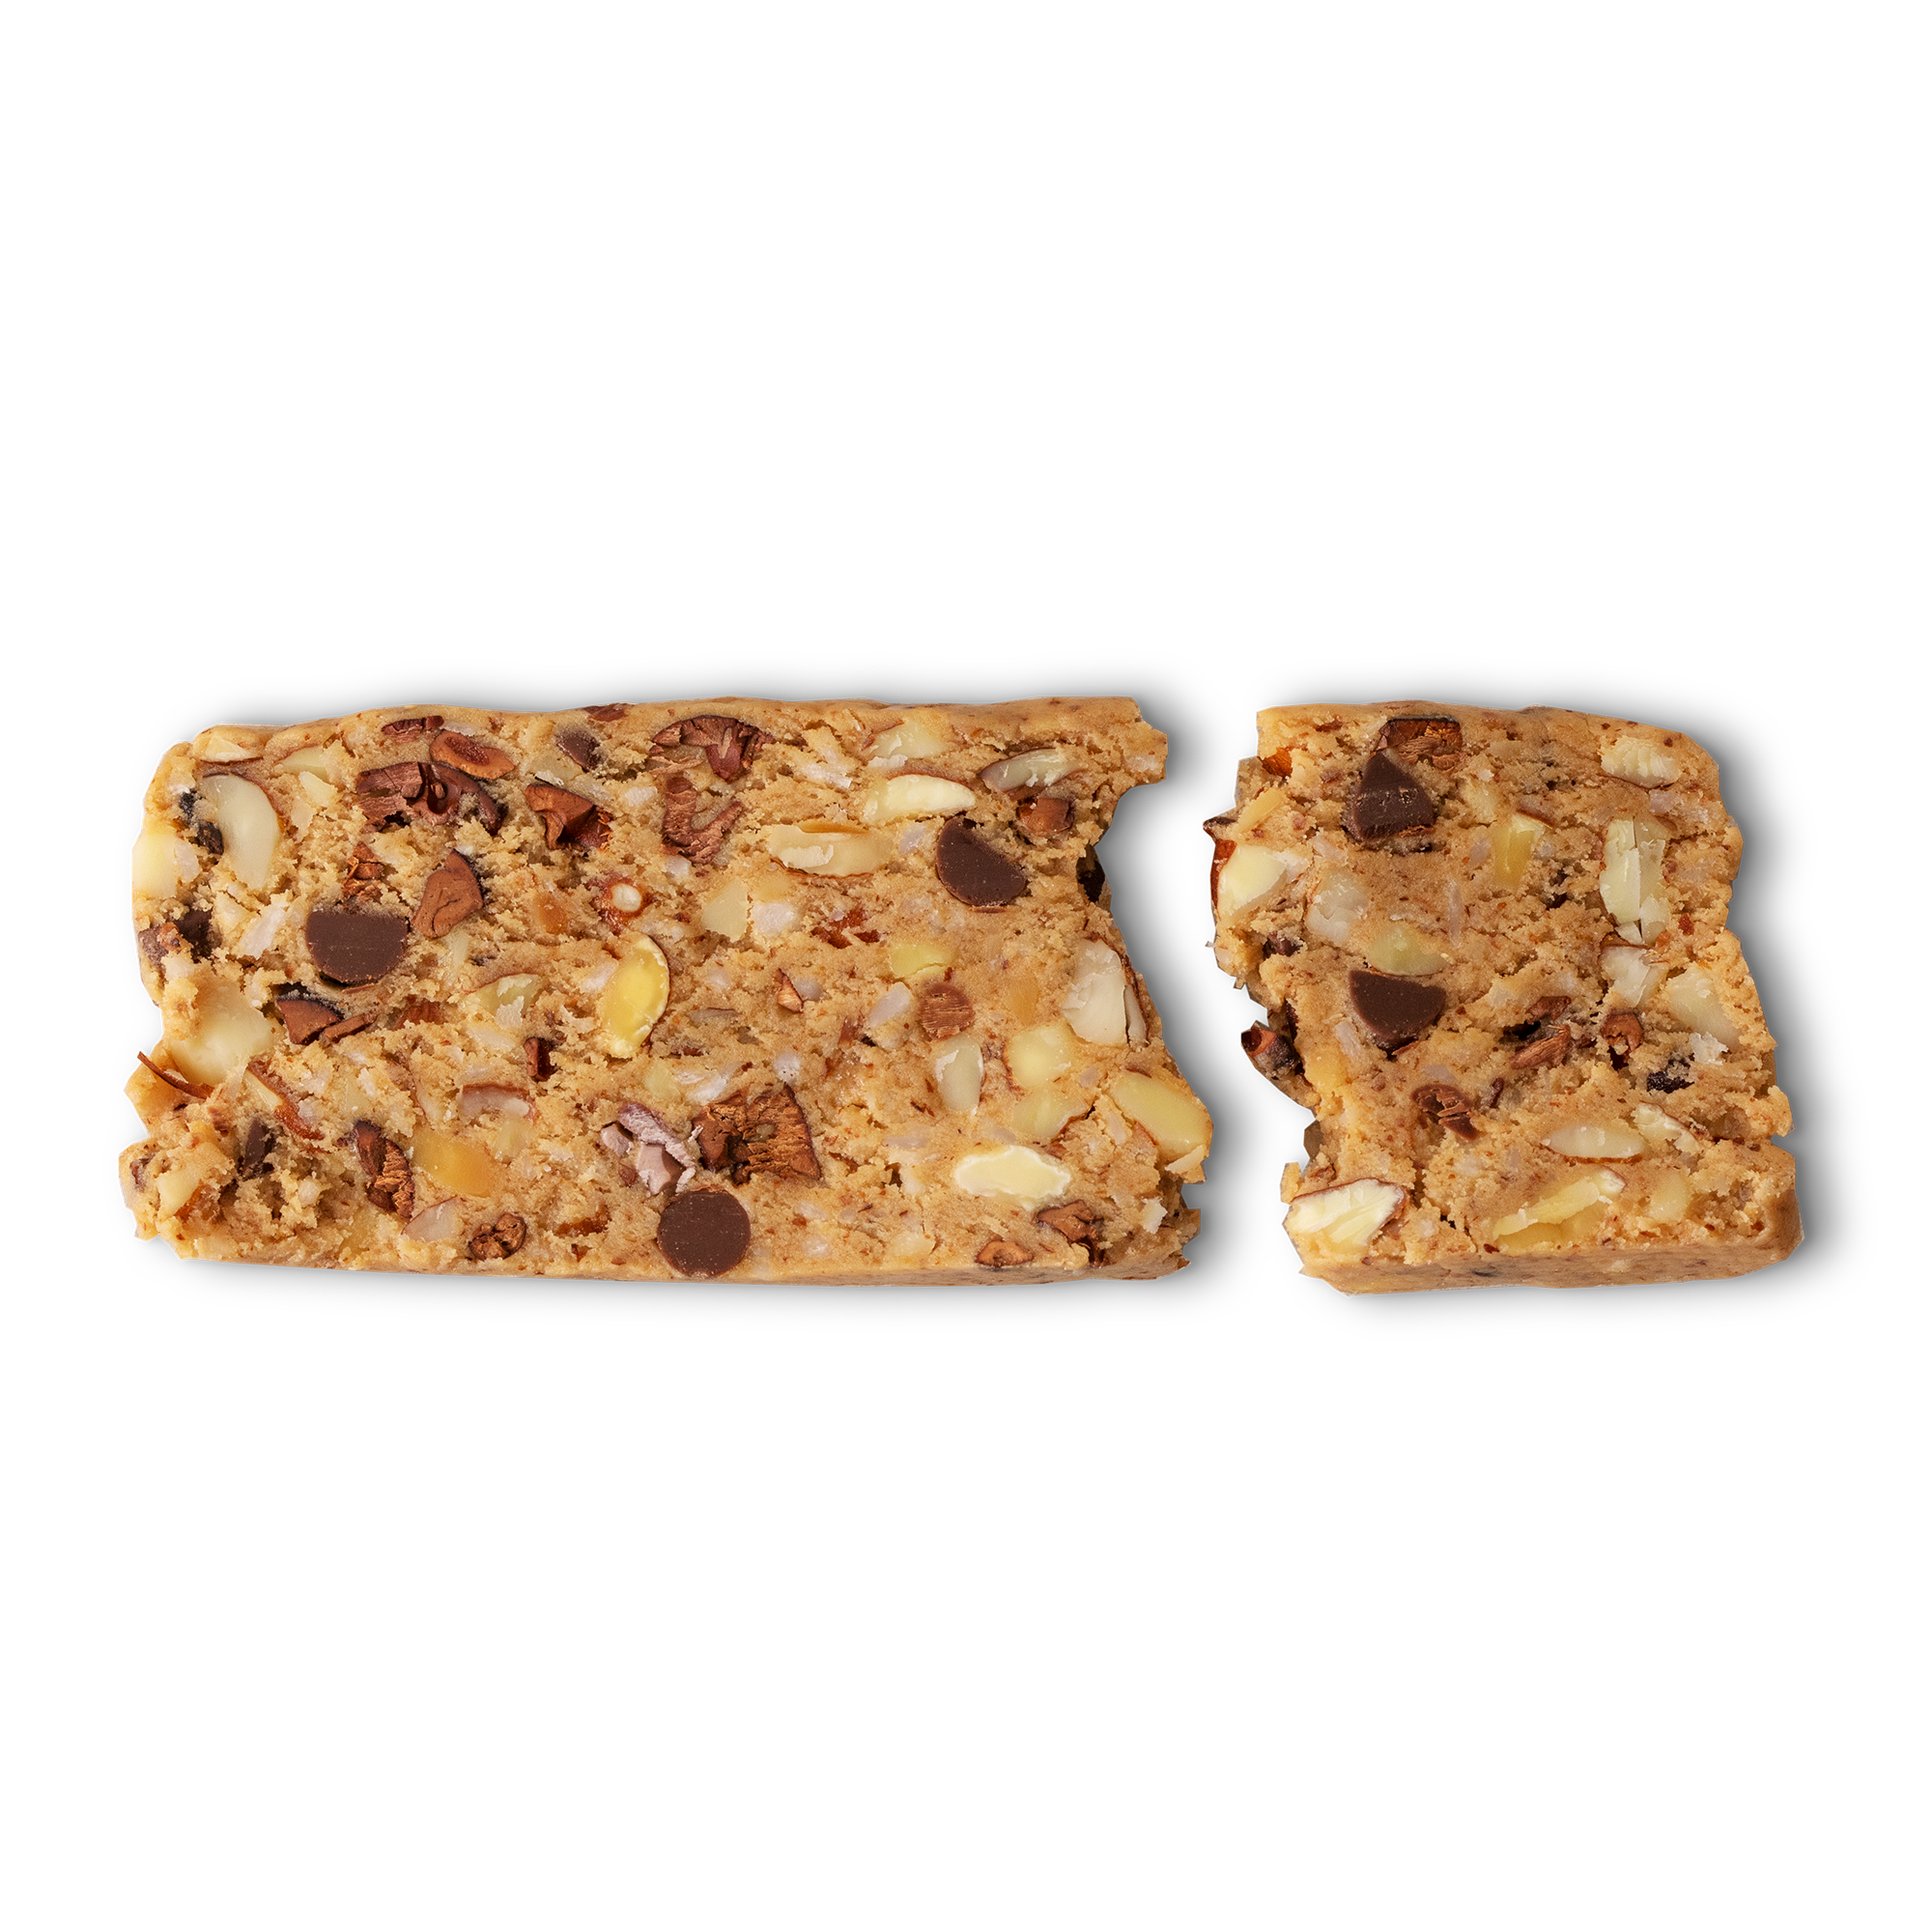 Smart Bar - Almond Chocolate Chip (12ct)